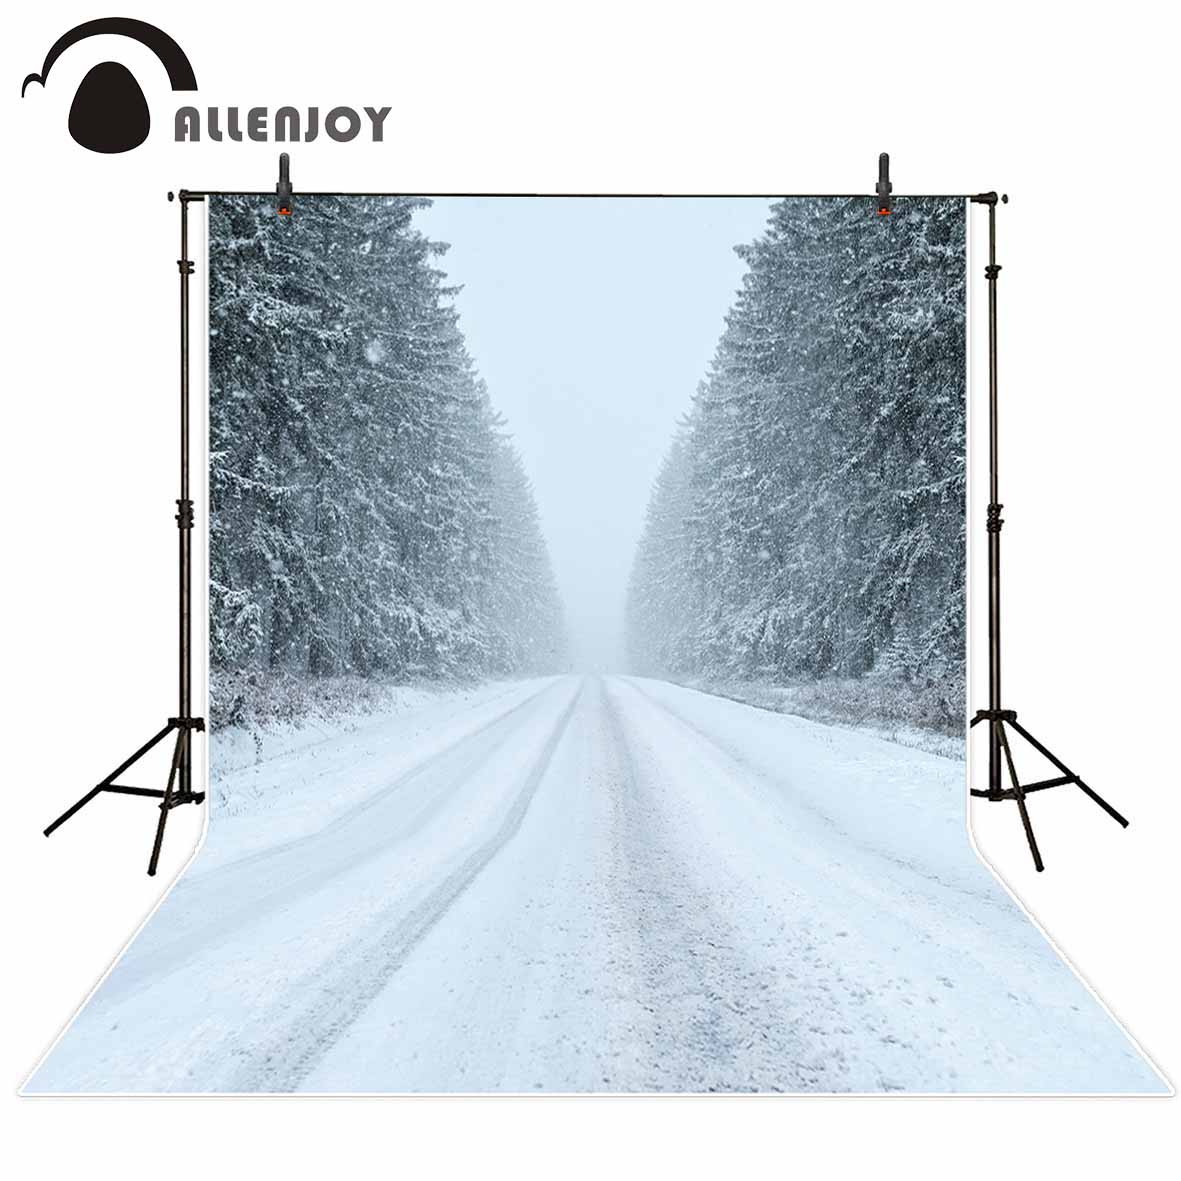 Allenjoy newborn photography background Blizzard Snow Cedar Snowflakes Road Marks photo studio photobooth high quality HD files